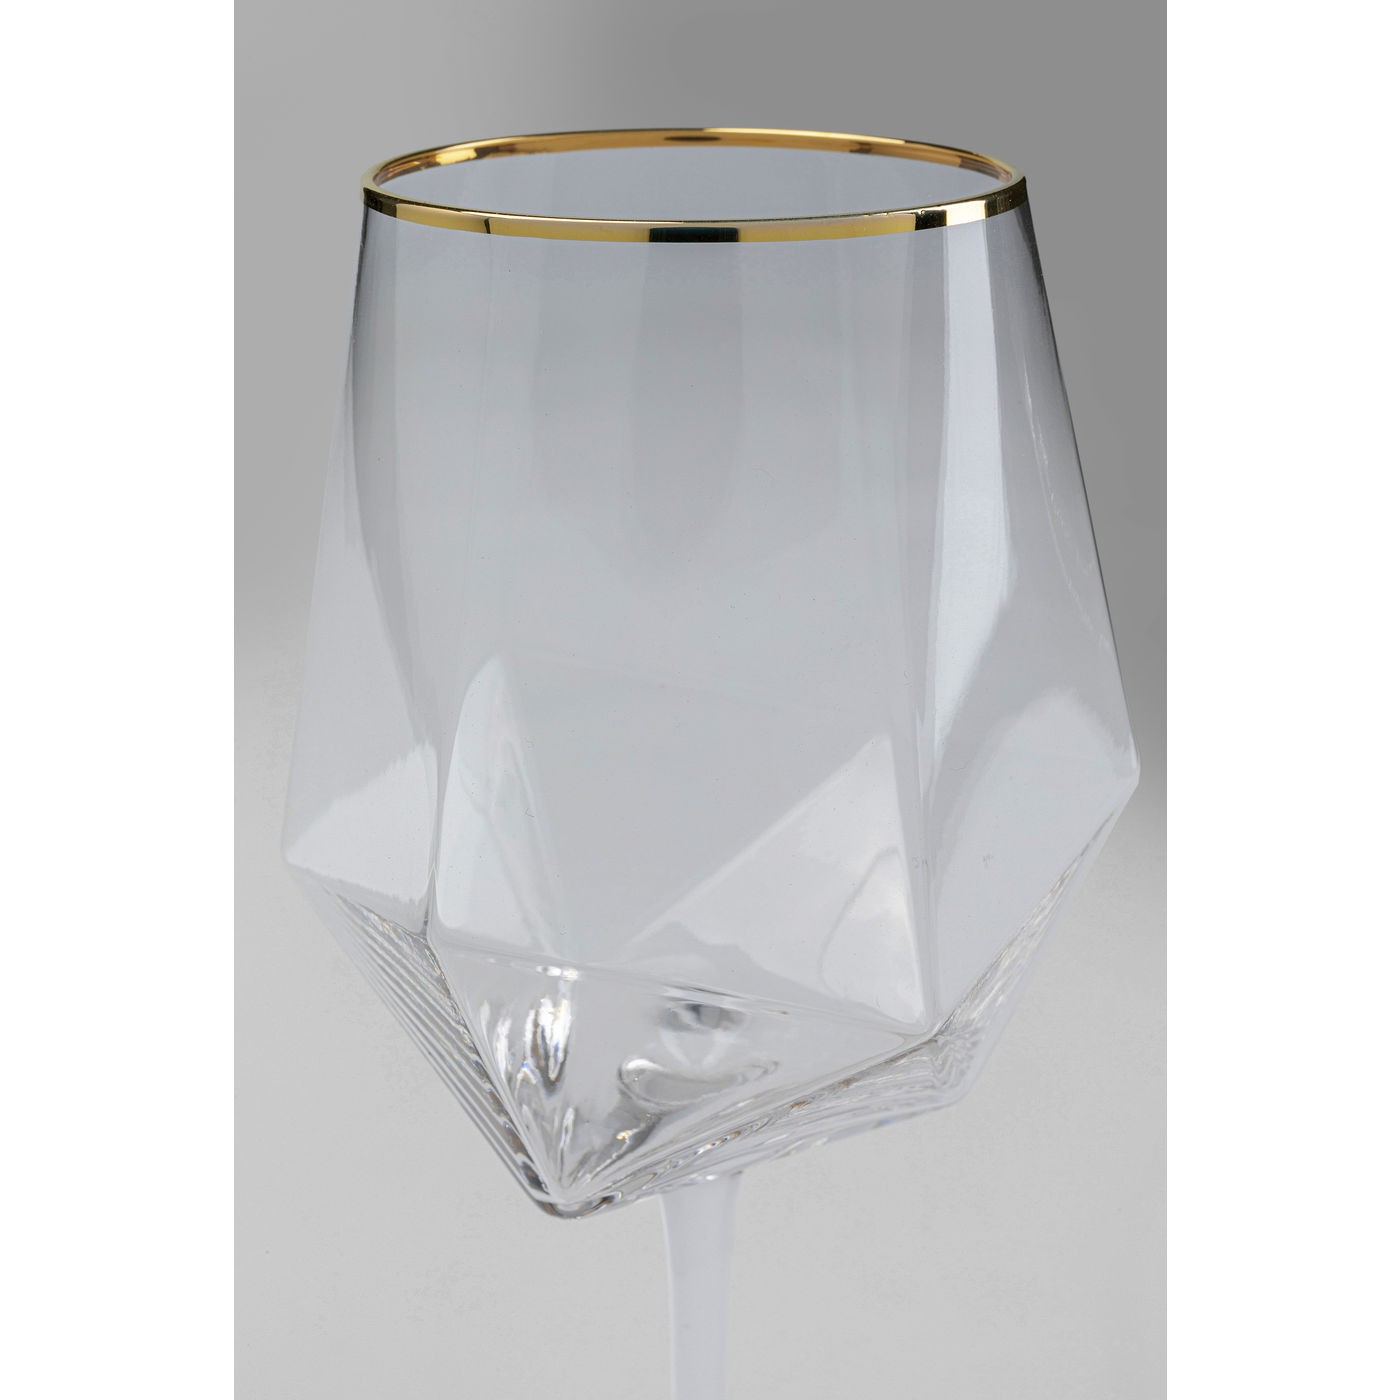 Verres à vin Diamond doré set de 6 Kare Design